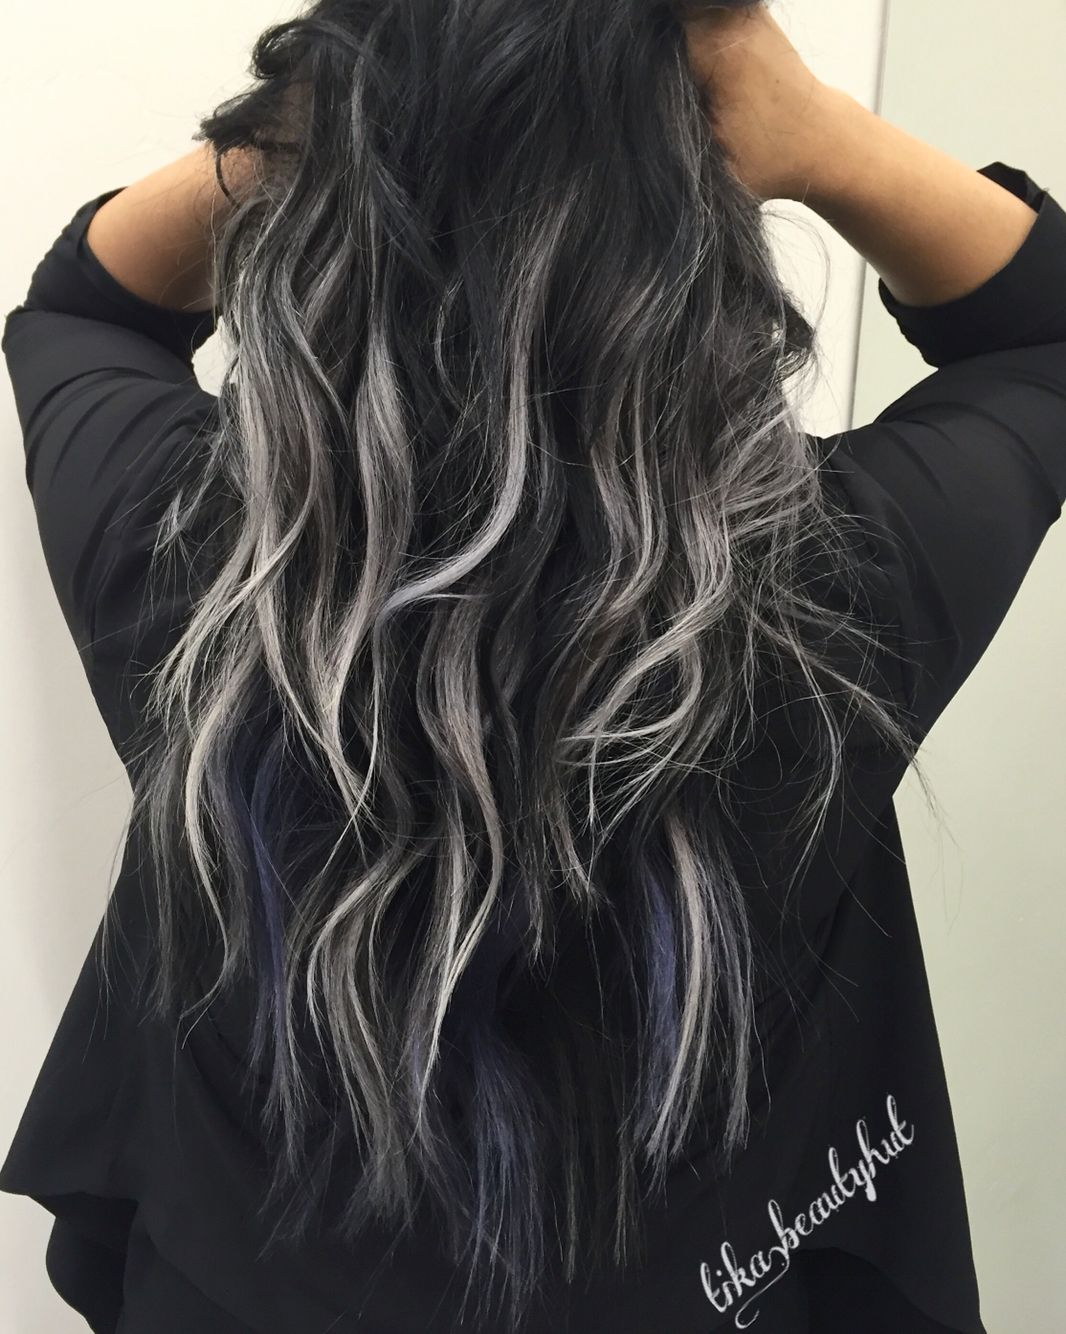 10 balayage color ideas you need to try this fall | pretty